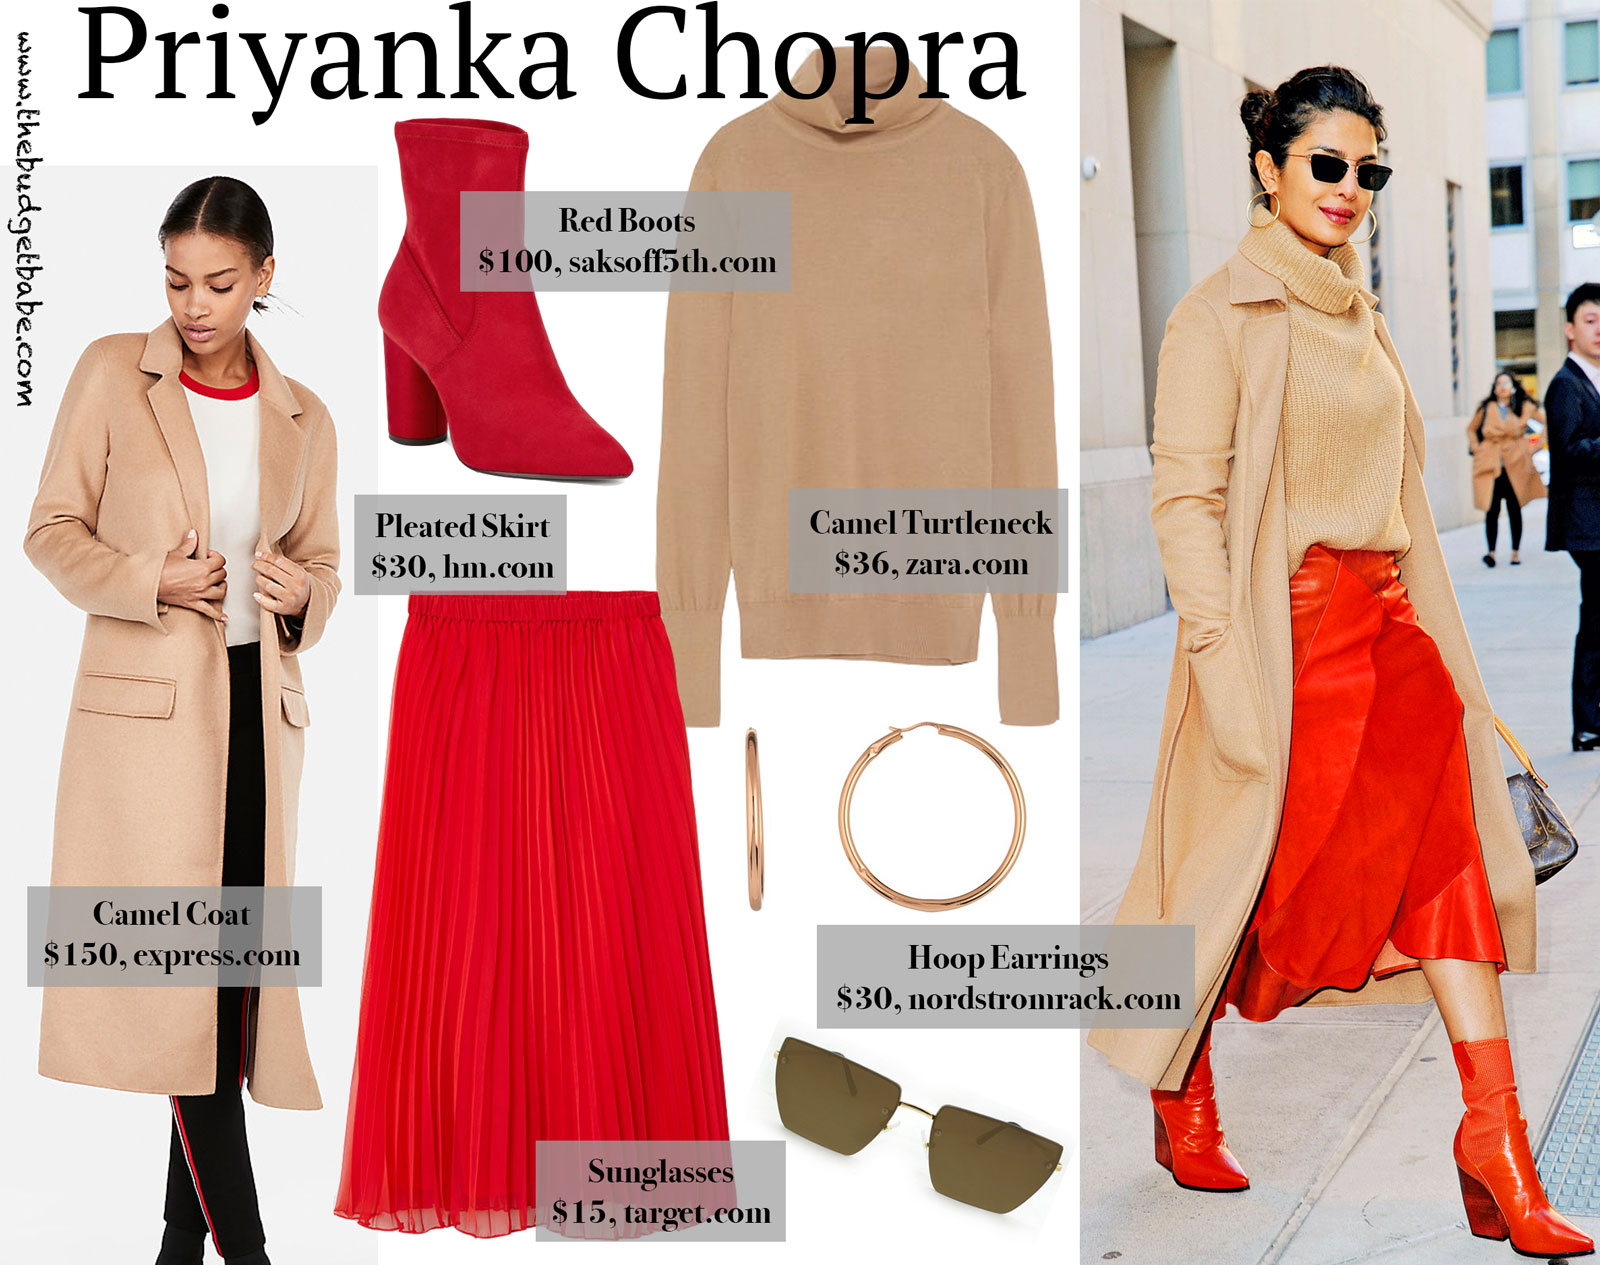 Priyanka Chopra Red Skirt and Camel Coat Look for Less